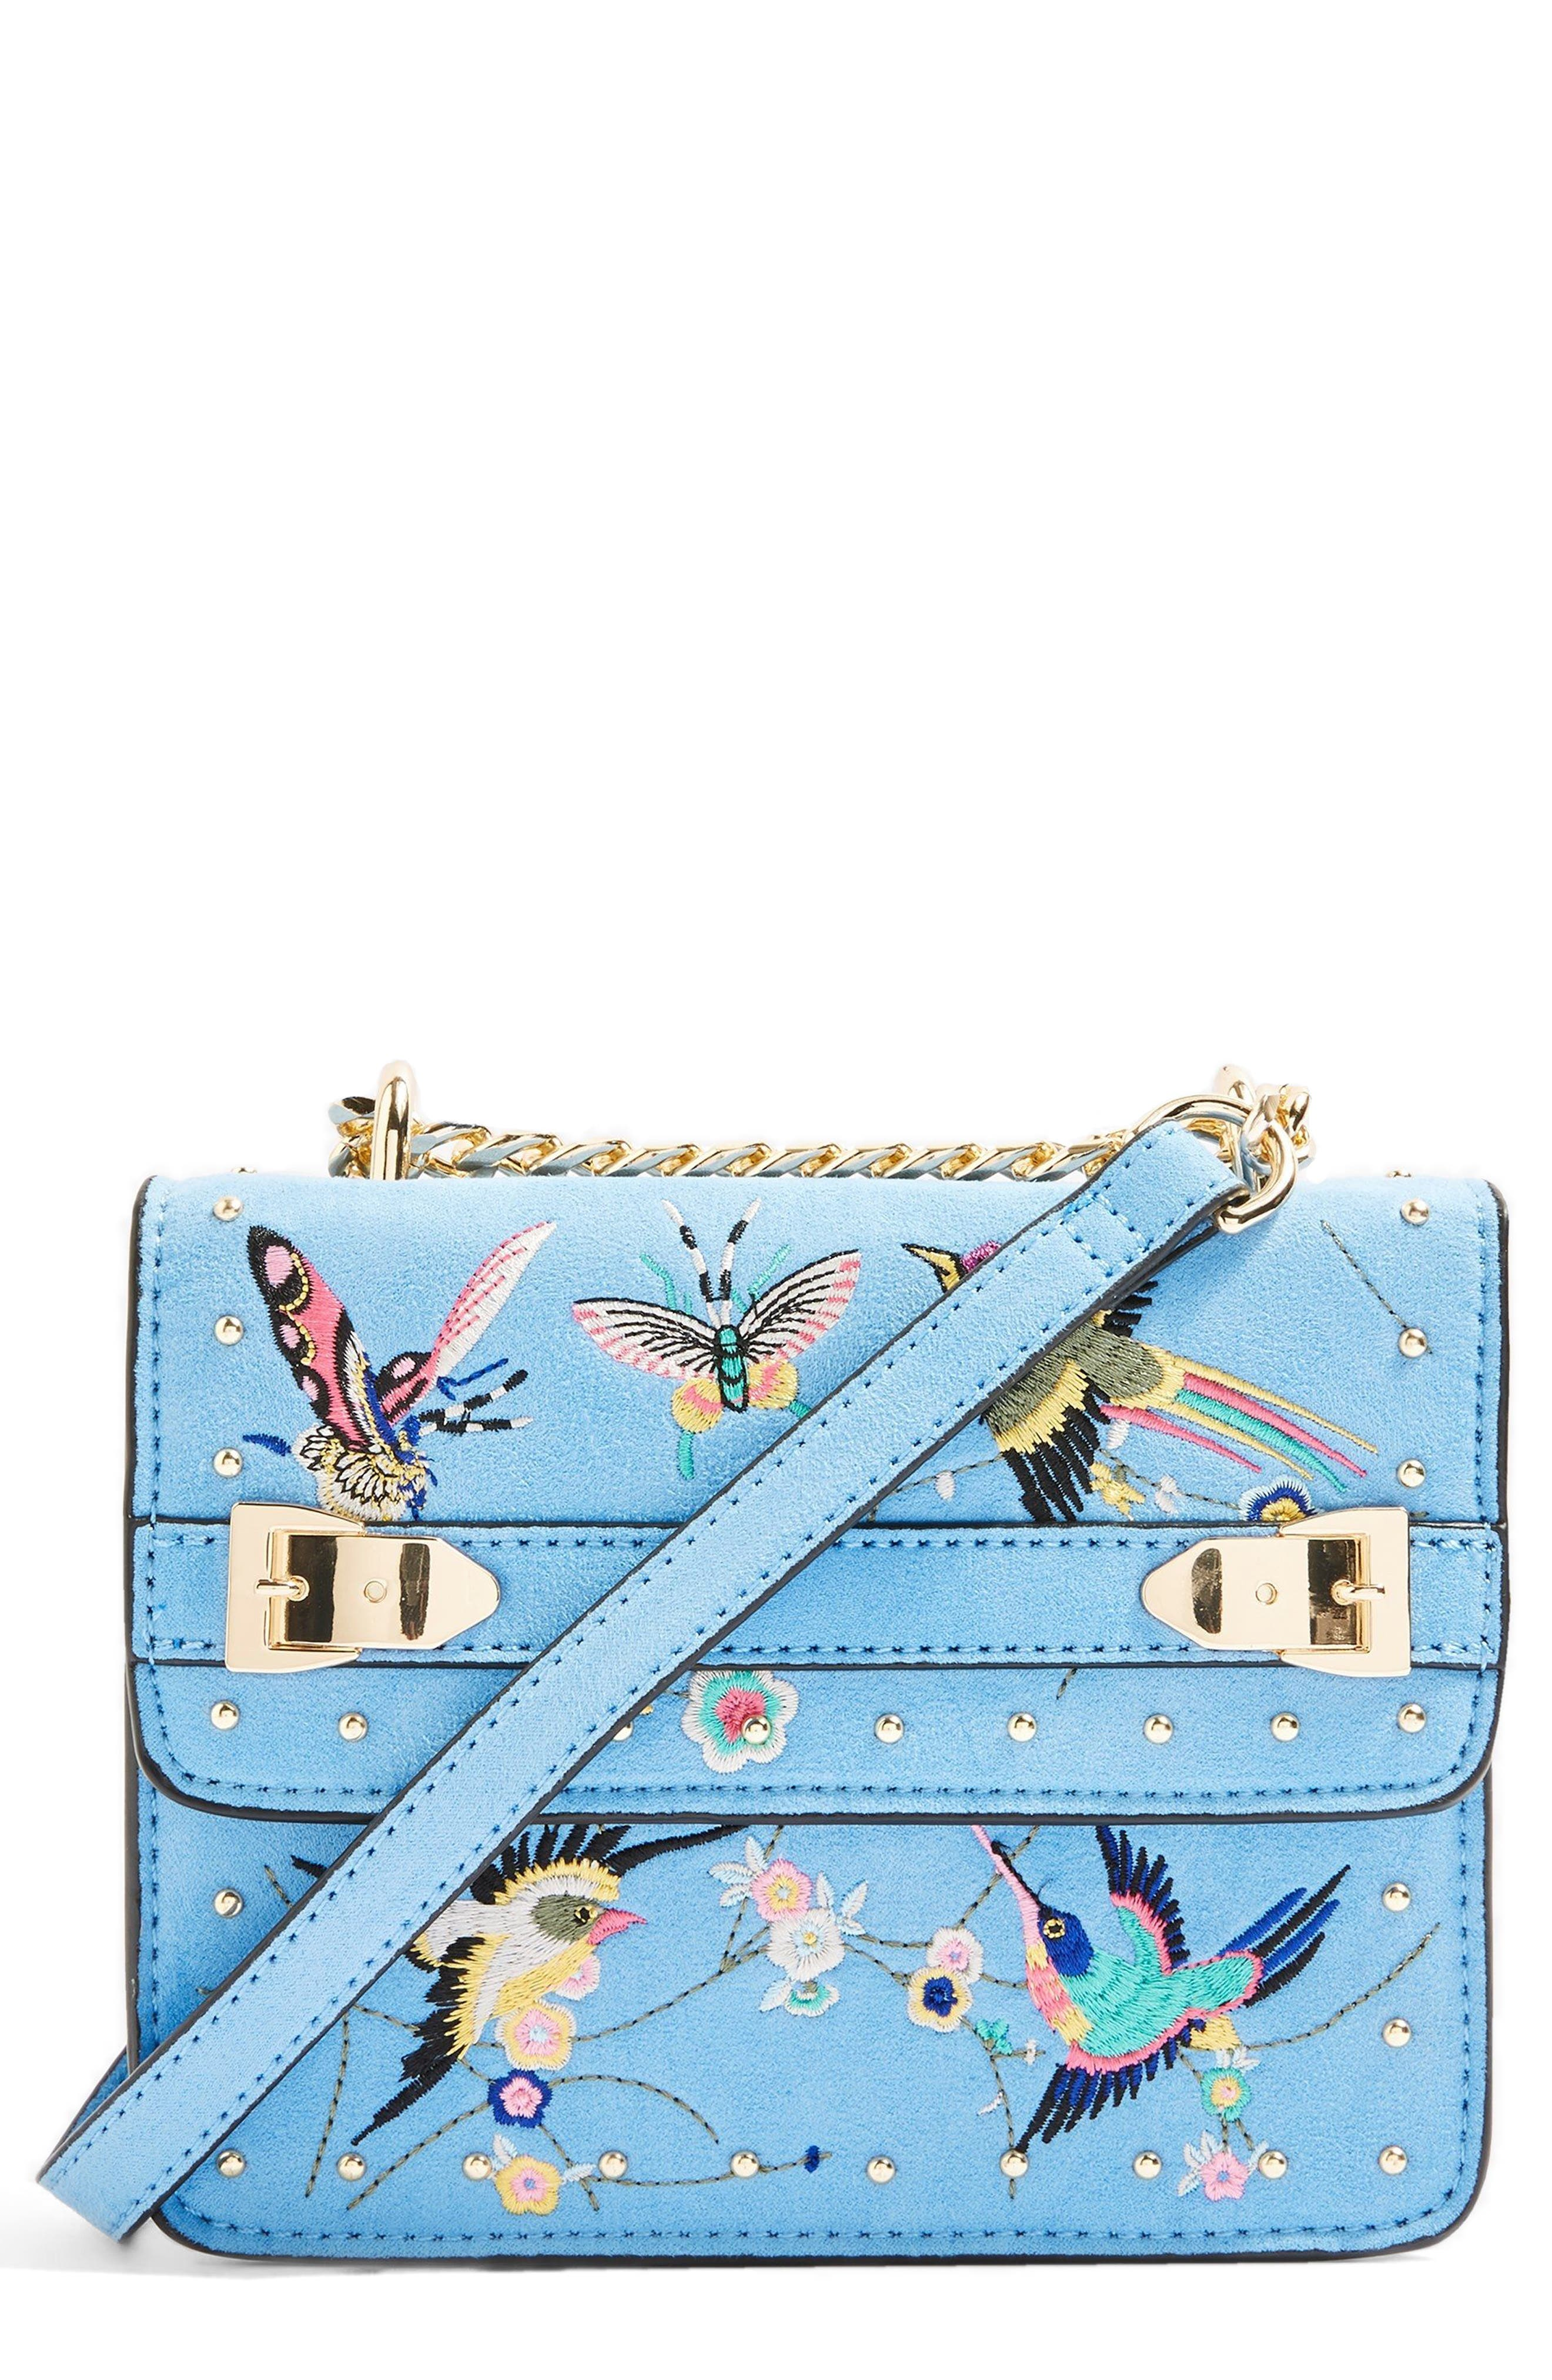 Polly Bird Embroidered Crossbody Bag,                         Main,                         color, BLUE MULTI